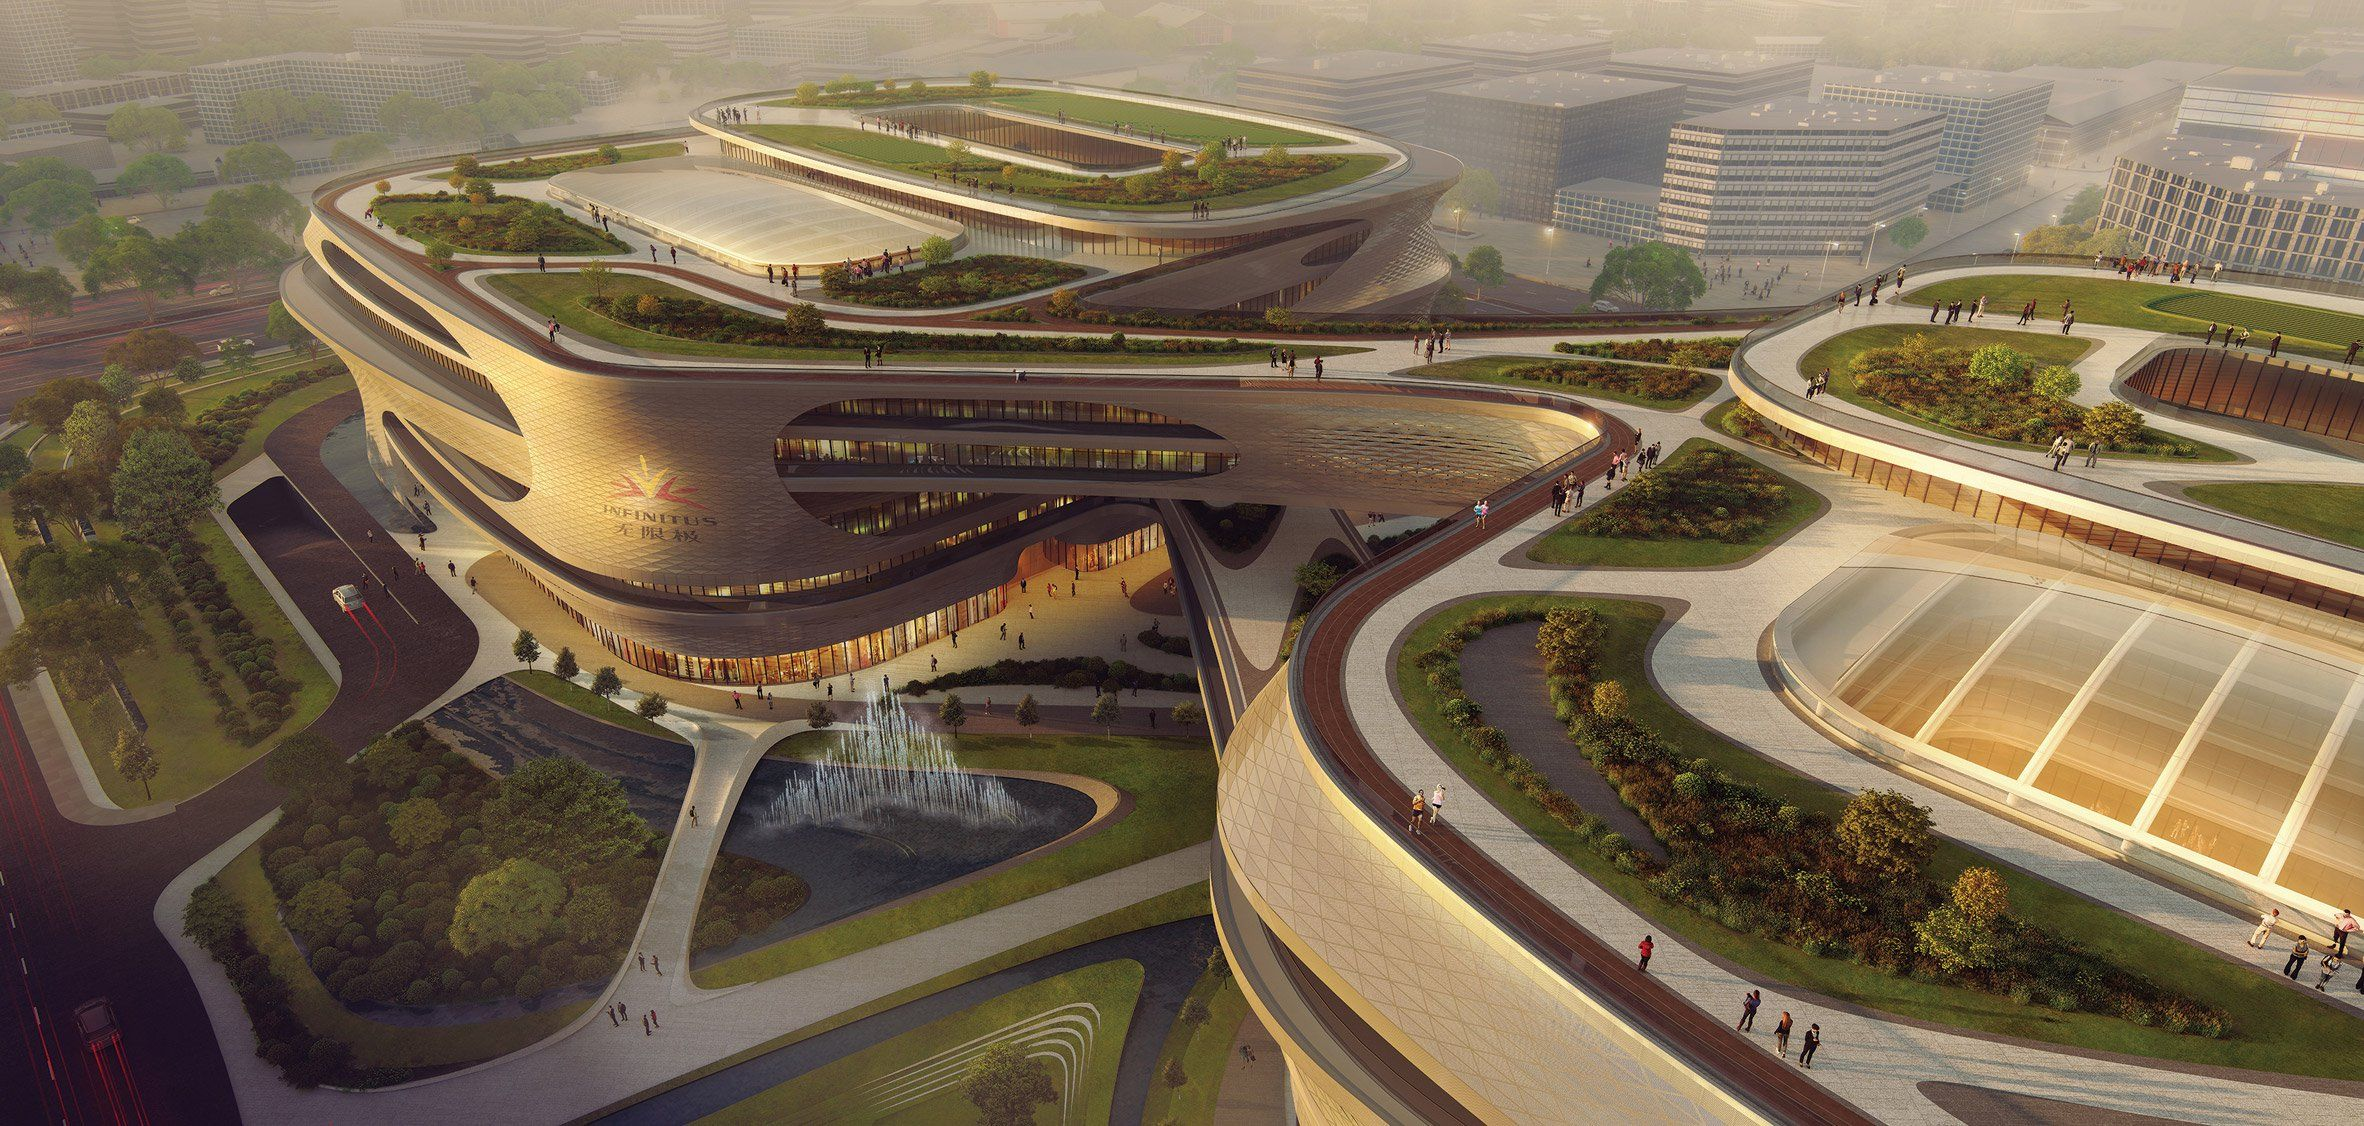 Infinitus zaha hadid architects china dezeen 2364 col 2 for Architecture zaha hadid